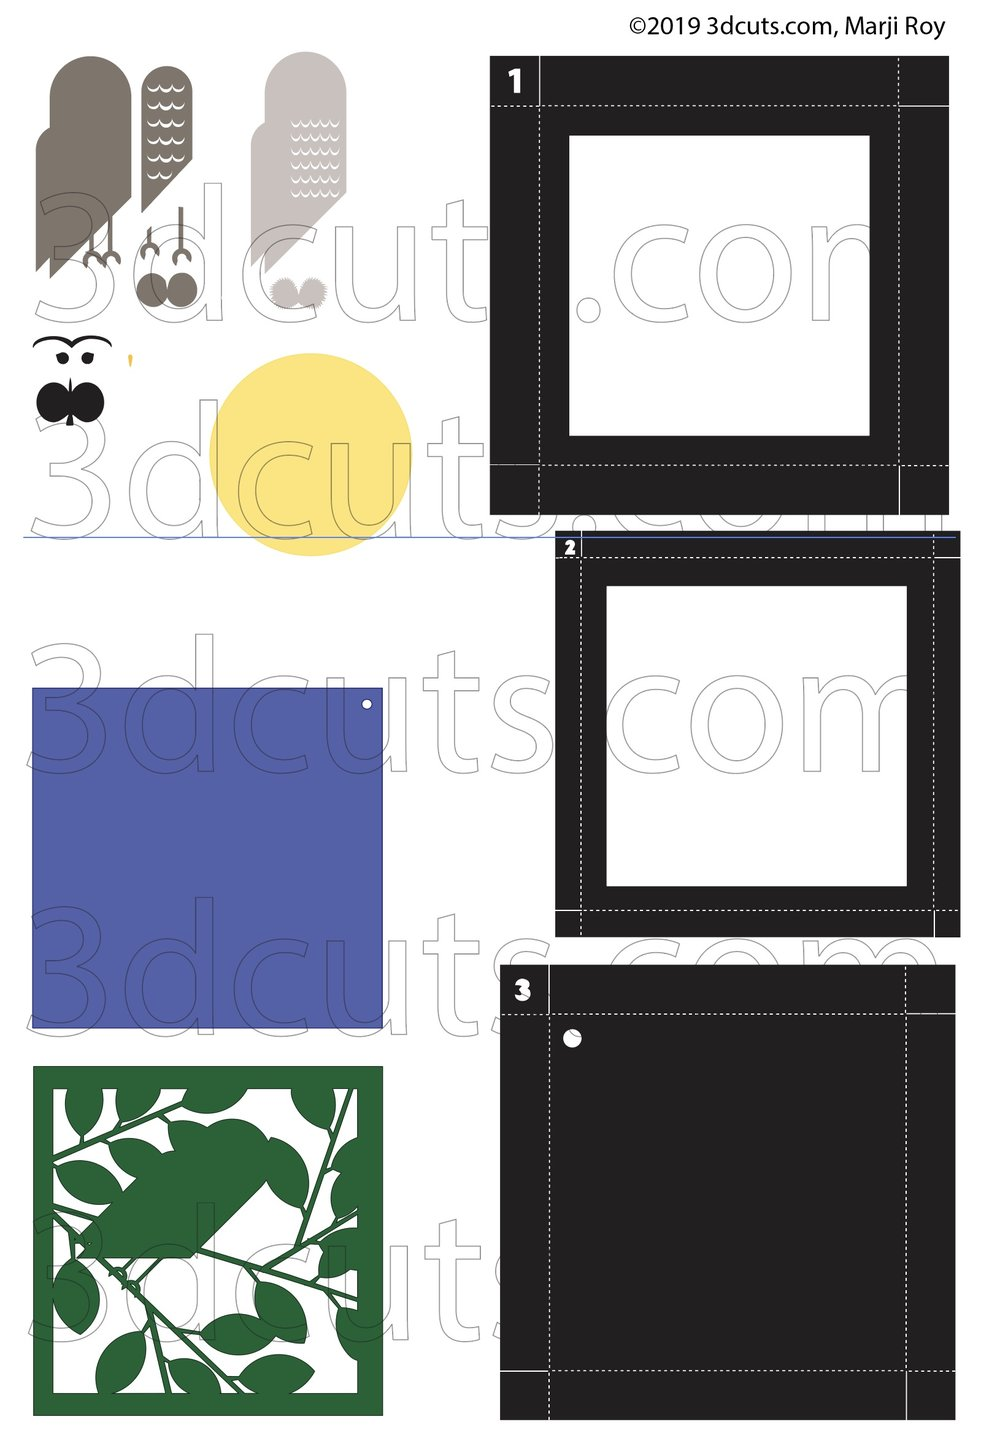 Barred Owl Shadow Box from the Owl Series by 3DCuts.com, Marji Roy, 3D cutting files in .svg, .dxf, and .pdf formats for use with Silhouette, Cricut and other cutting machines.